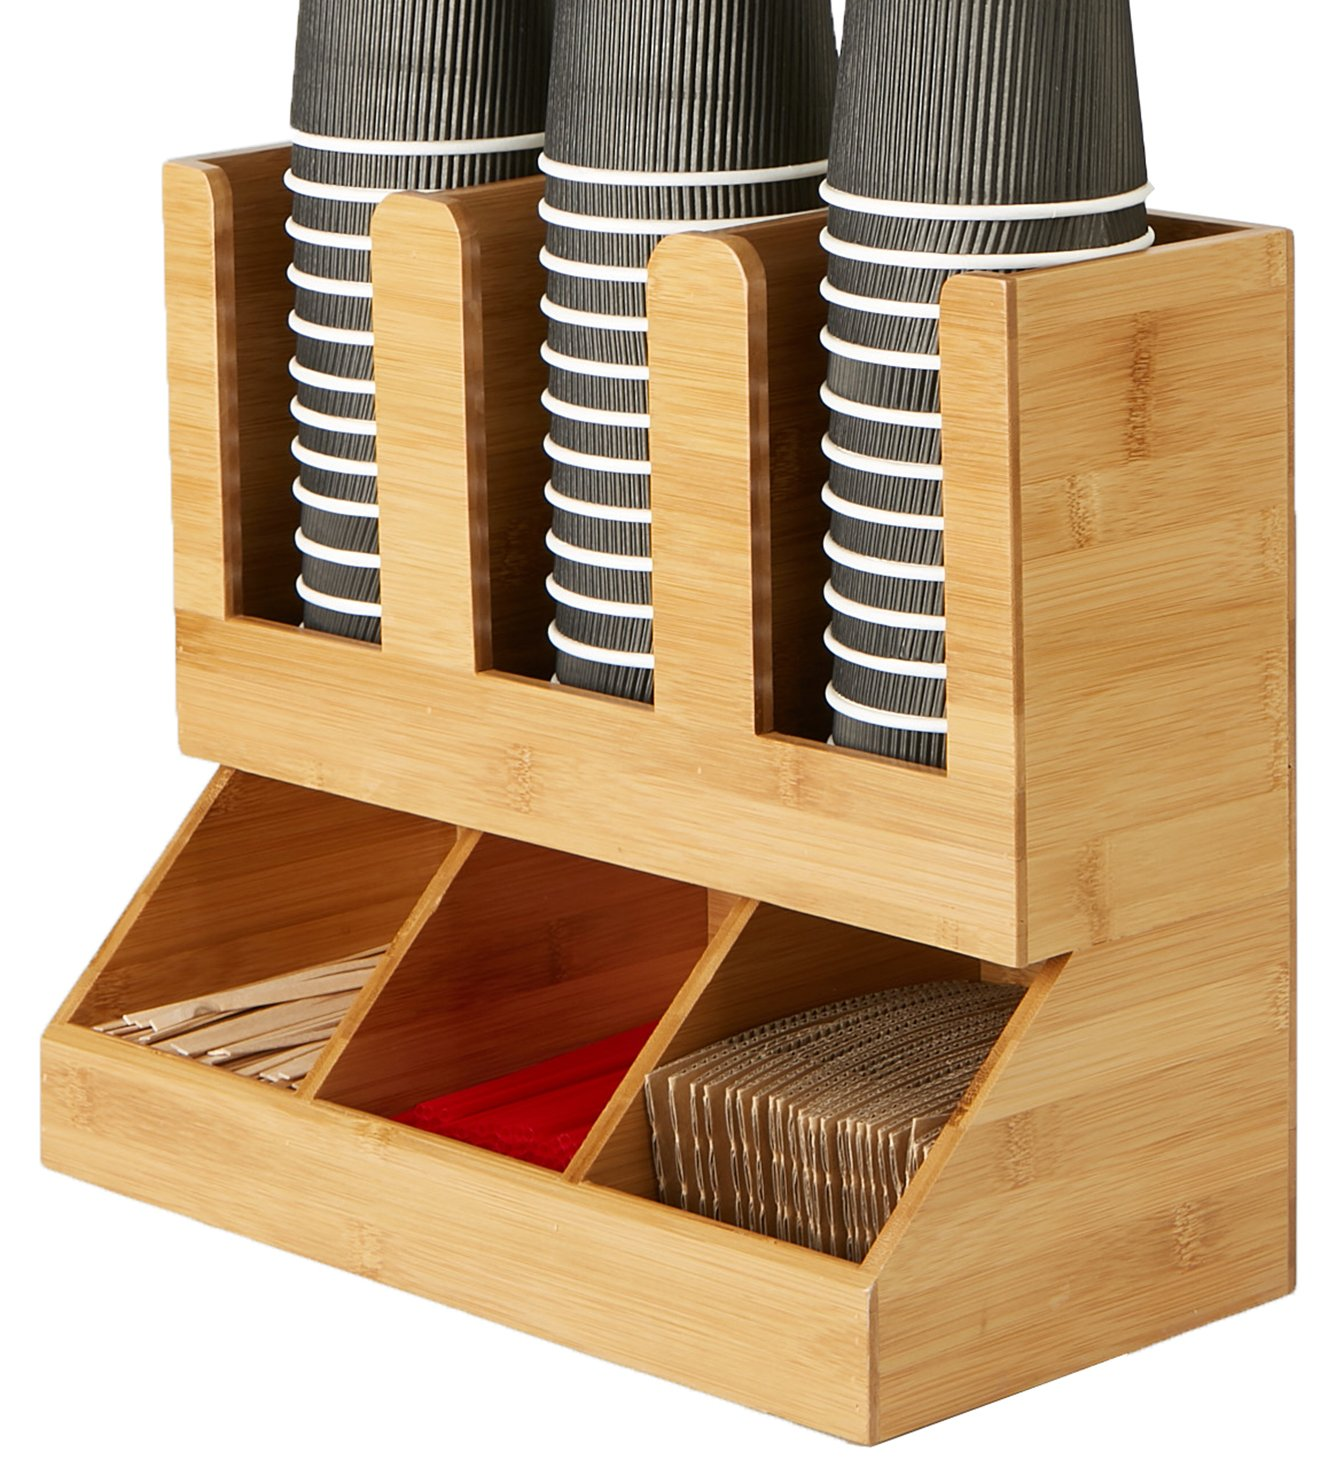 Mind Reader 6 Compartment Upright Breakroom Coffee Condiment and Cup Storage Organizer, Black UPRIGHT6-BLK